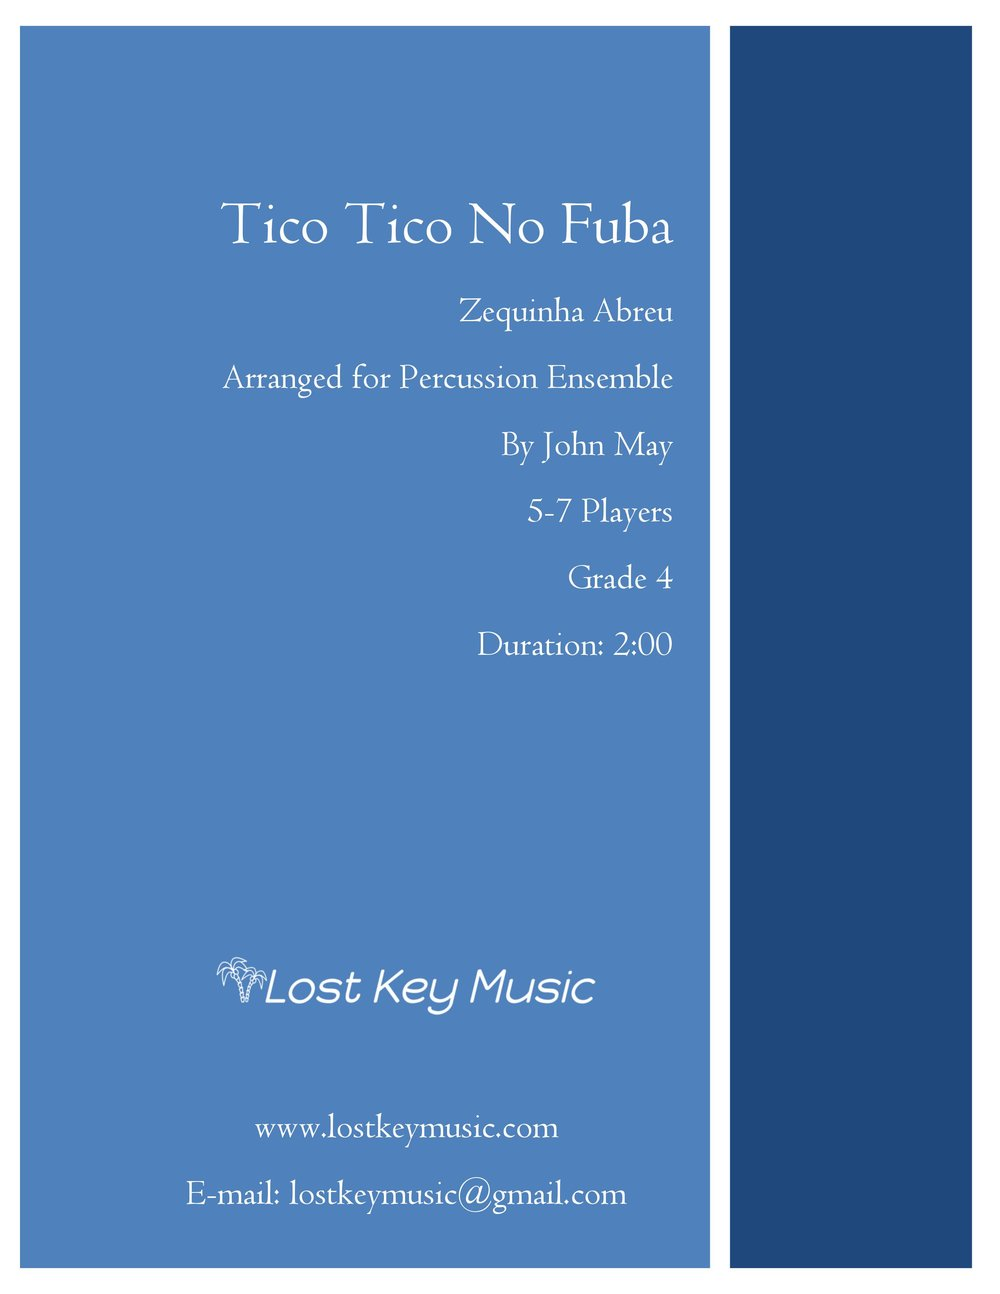 Tico Tico No Fuba-Percussion Ensemble-Cover Photo.jpg